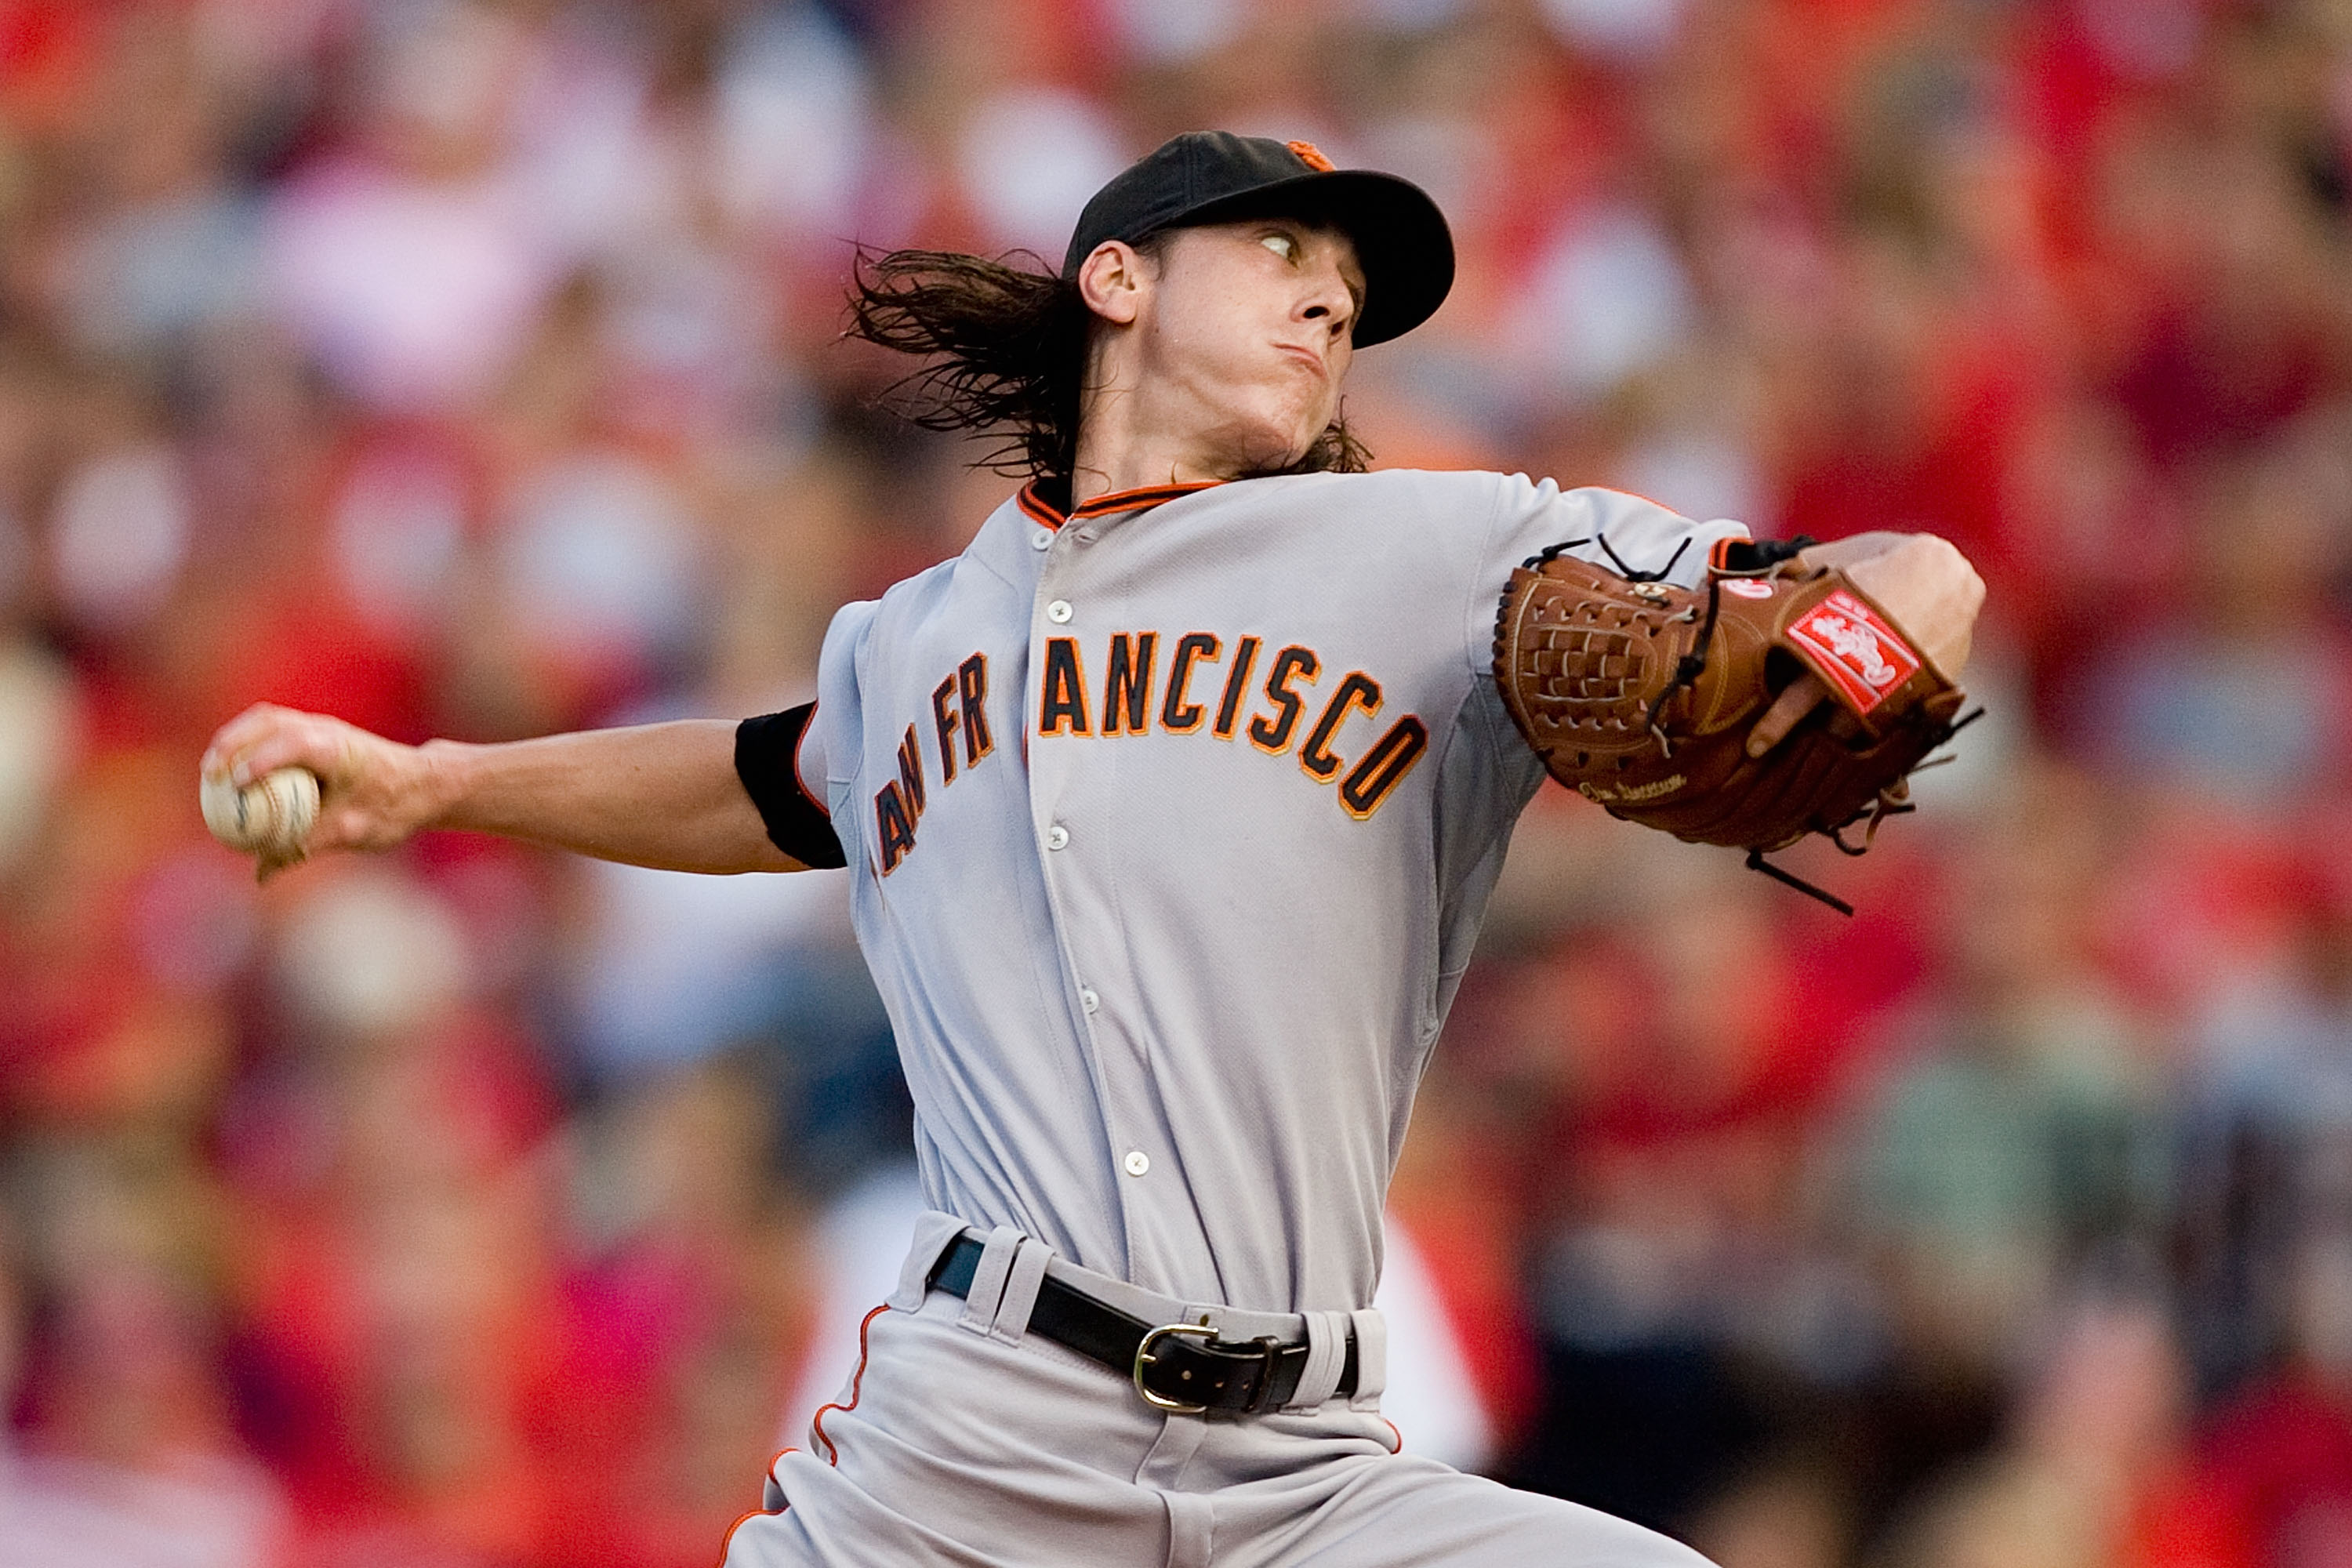 ST. LOUIS - AUGUST 21: Starter Tim Lincecum #55 of the San Francisco Giants pitches against the St. Louis Cardinals at Busch Stadium on August 21, 2010 in St. Louis, Missouri.  (Photo by Dilip Vishwanat/Getty Images)